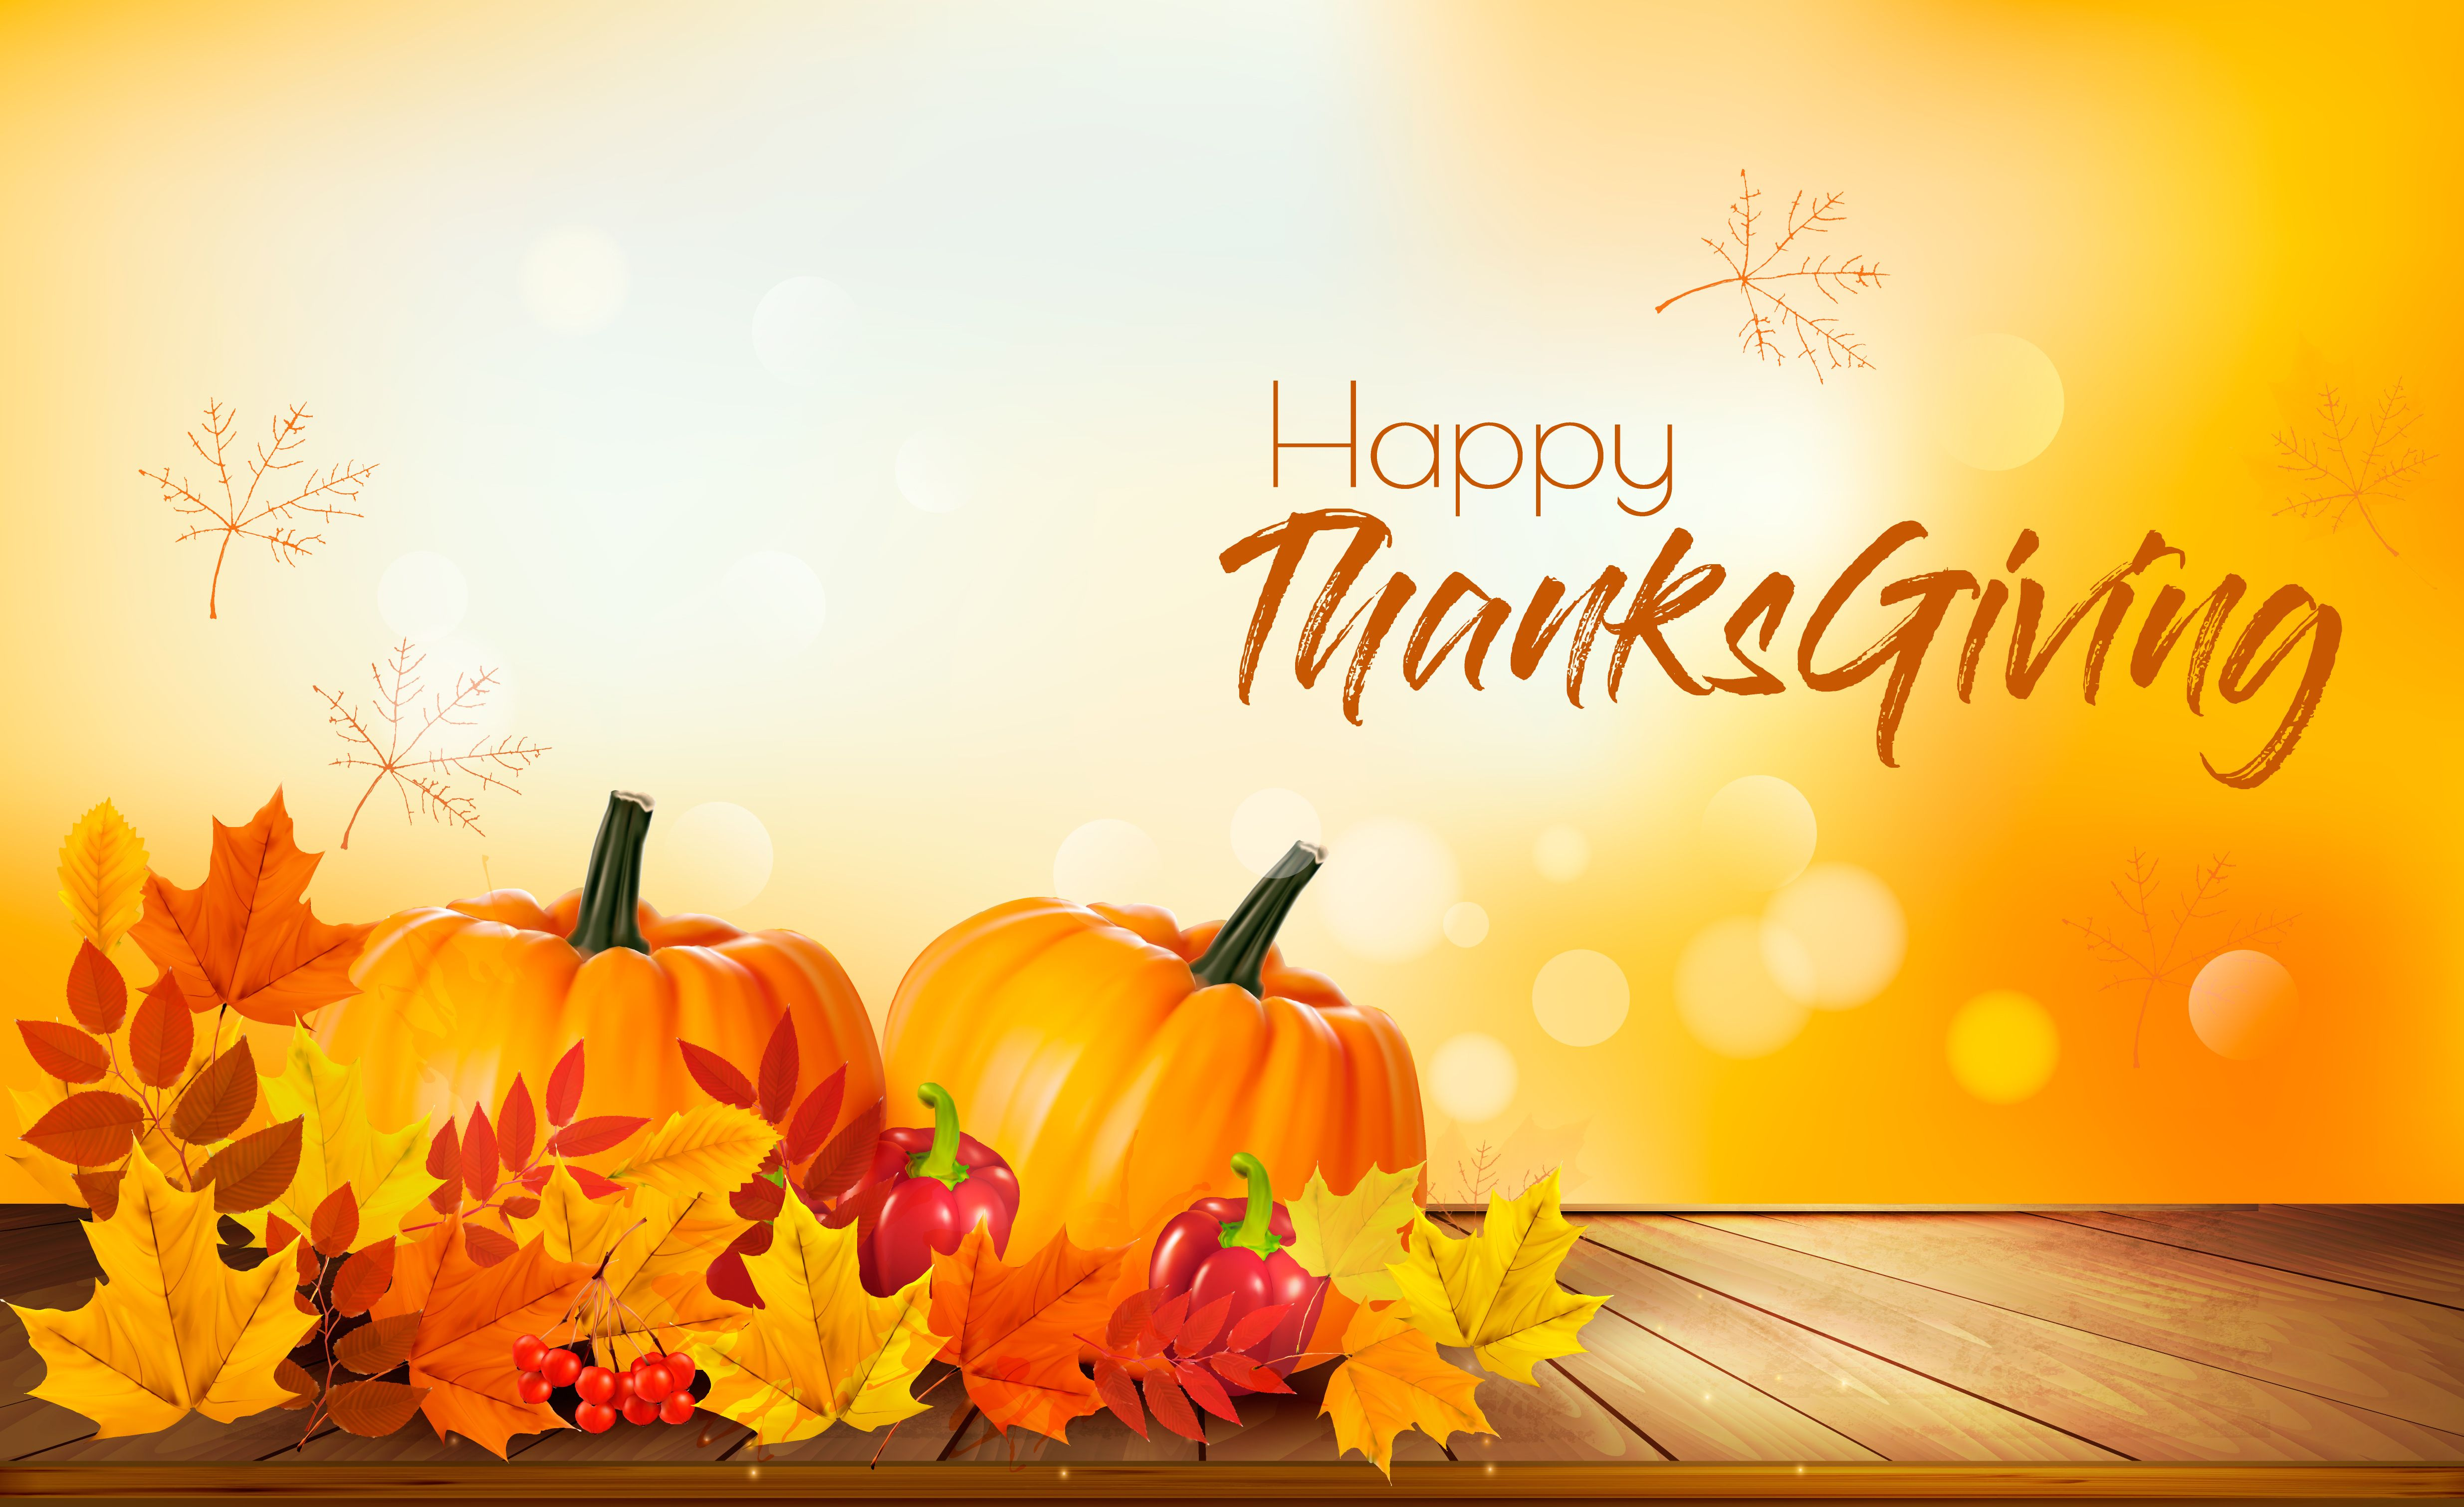 Cheap Flights For Thanksgiving 2019 Holiday Flight Offers Happy Thanksgiving Pictures Thanksgiving Background Happy Thanksgiving Images